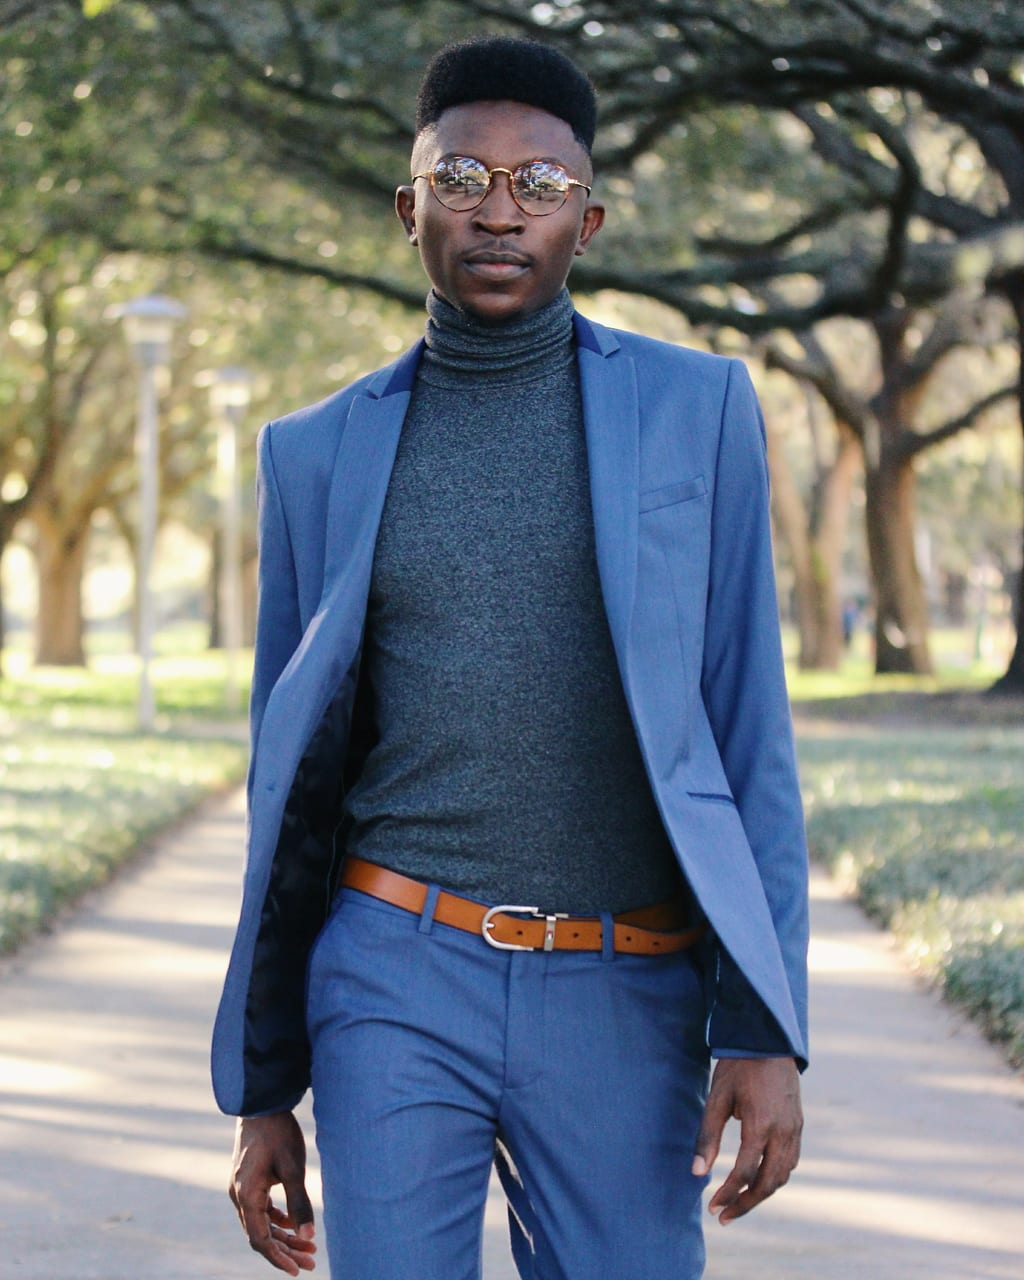 University of South Florida student Adedamola wears a slim fit blue Zara two-piece suit with a heather grey turtleneck and round tortiseshell glasses.